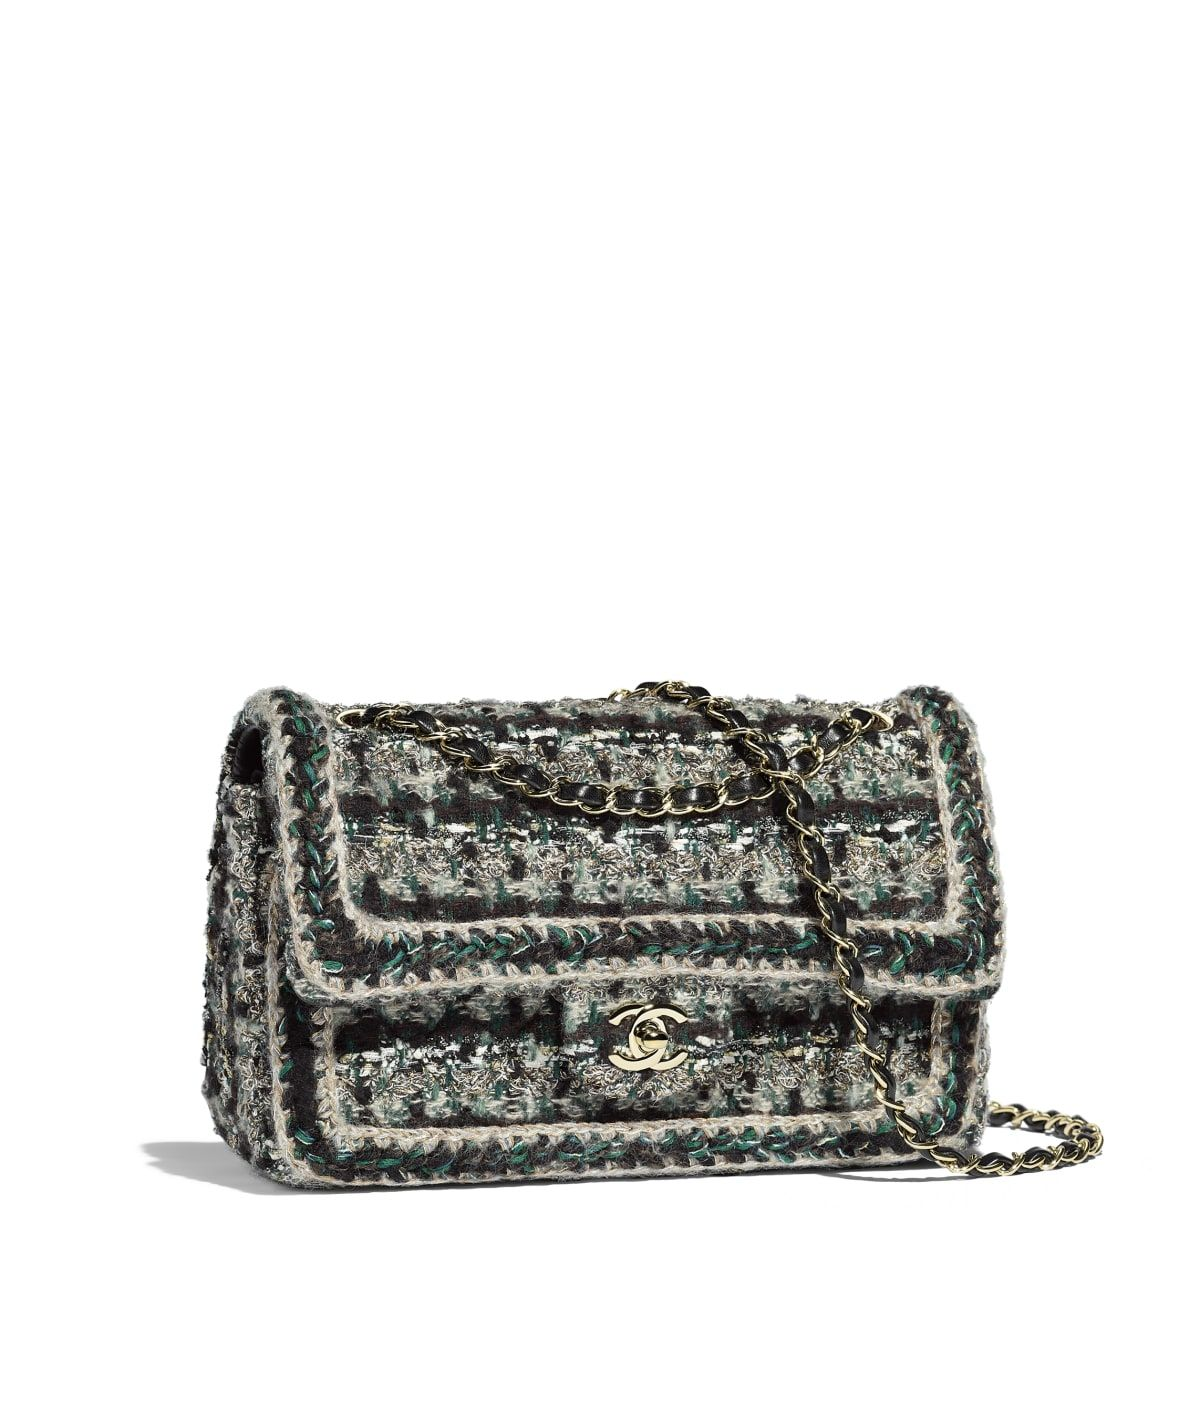 8b9c07be658177 Handbags of the Métiers d'Art Paris-Hamburg 2017/18 CHANEL Fashion  collection : Flap Bag, tweed, braid & gold-tone metal, gold, black, green &  white on the ...